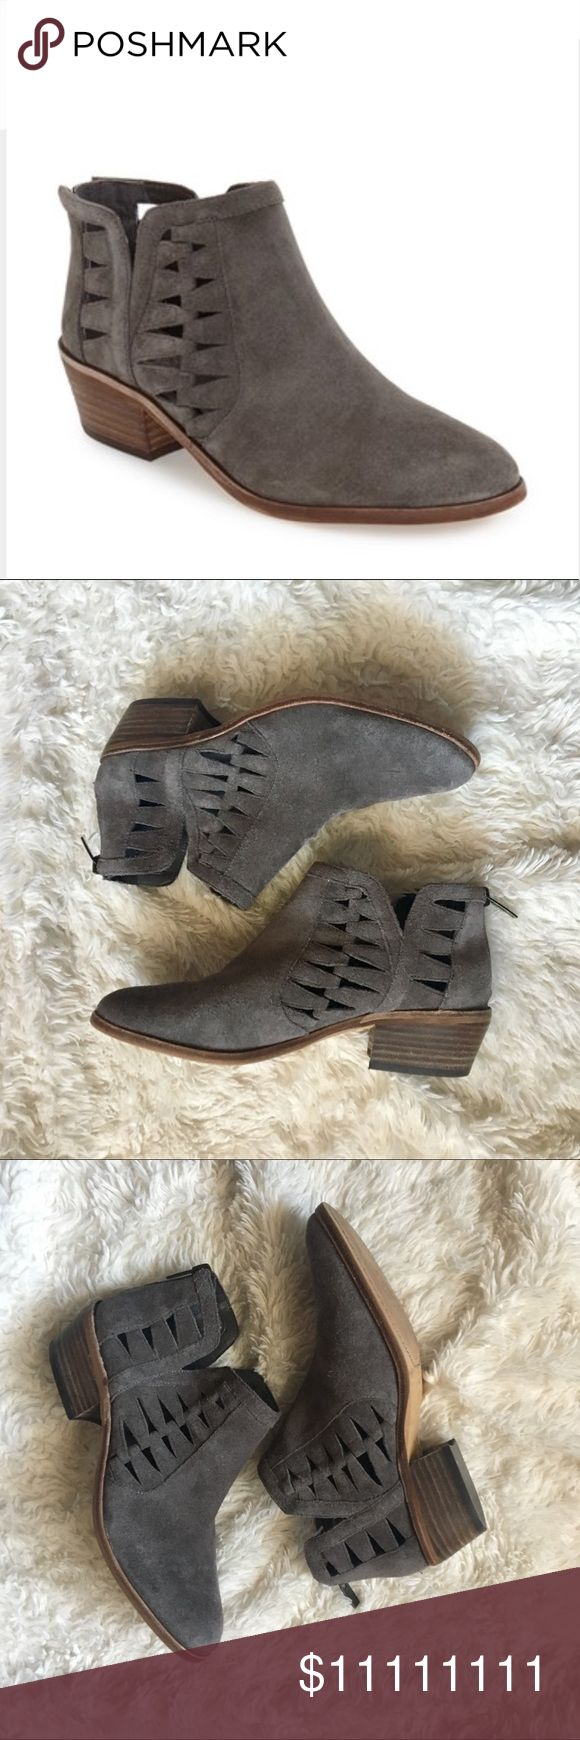 "✨NEW✨Vince Camuto ""Peera"" Booties--Reserved til 5p NWOTGrey Suede Cut-out booties. I got these at a Nordstrom Outlet. They are brand new; but were out on the floor. Small nick on Left shoe. 2"" Heel. Offers Welcome!! Vince Camuto Shoes Ankle Boots & Booties"